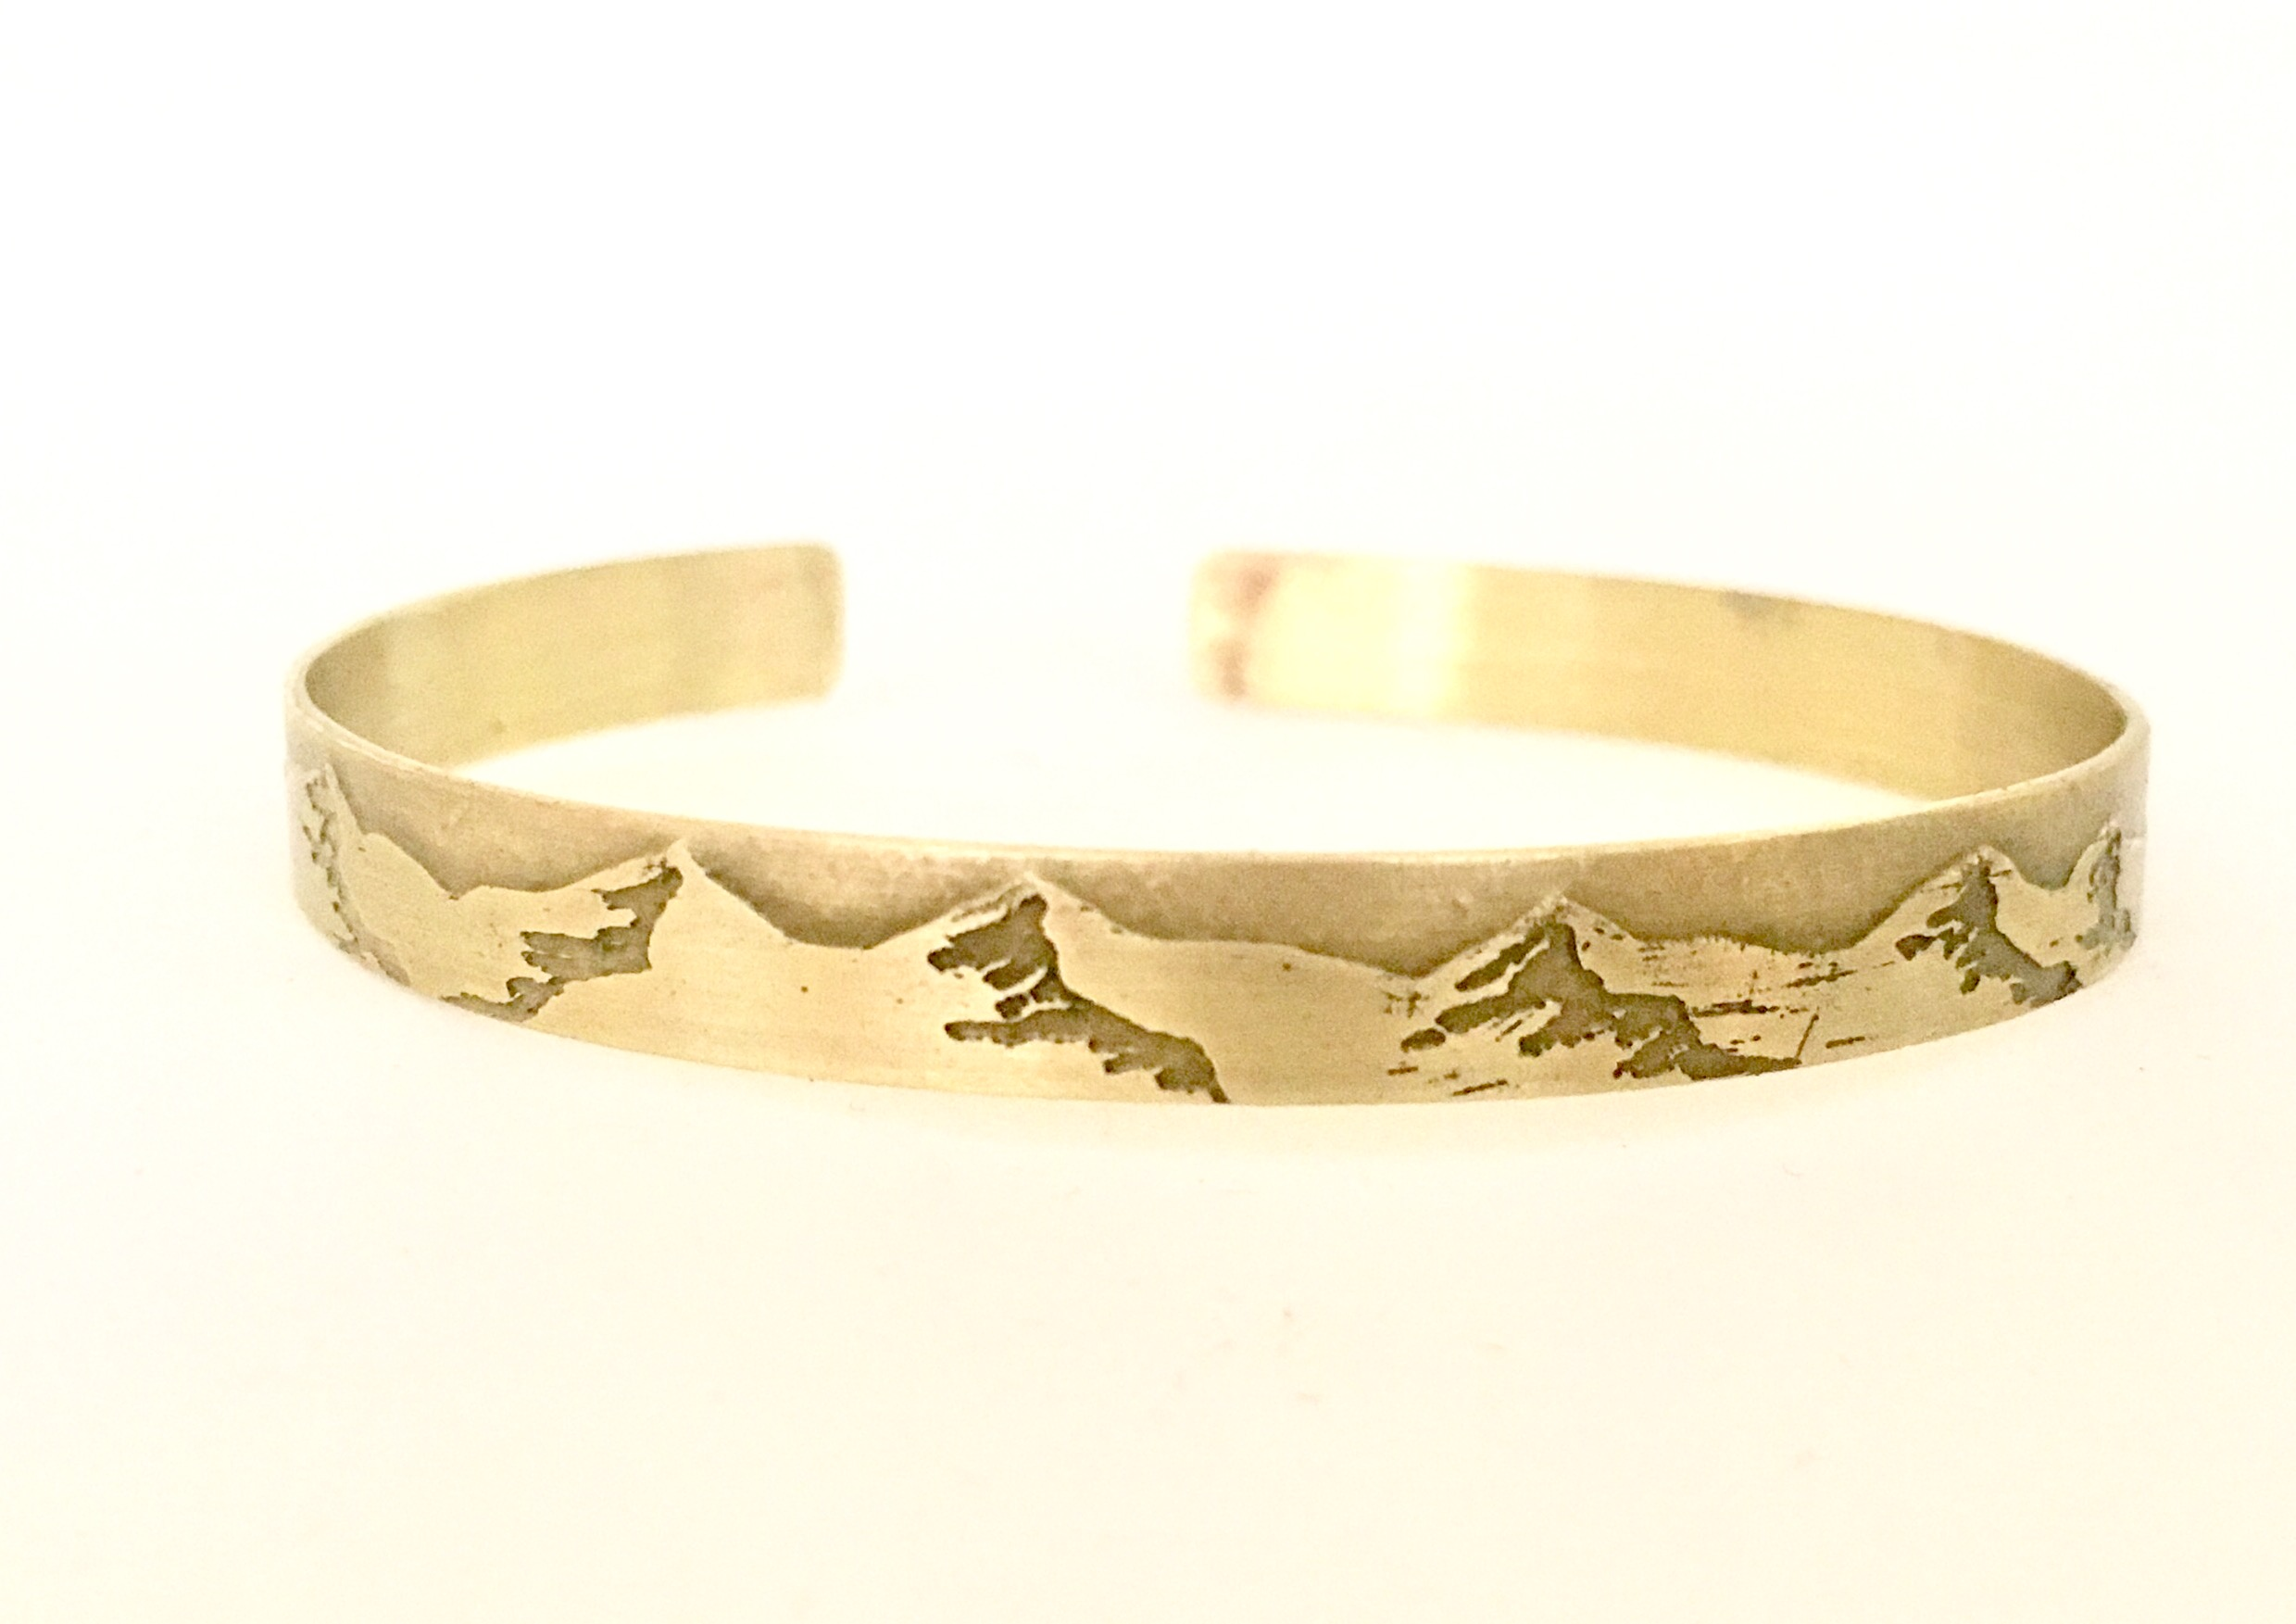 Small Mountain Range Bracelet